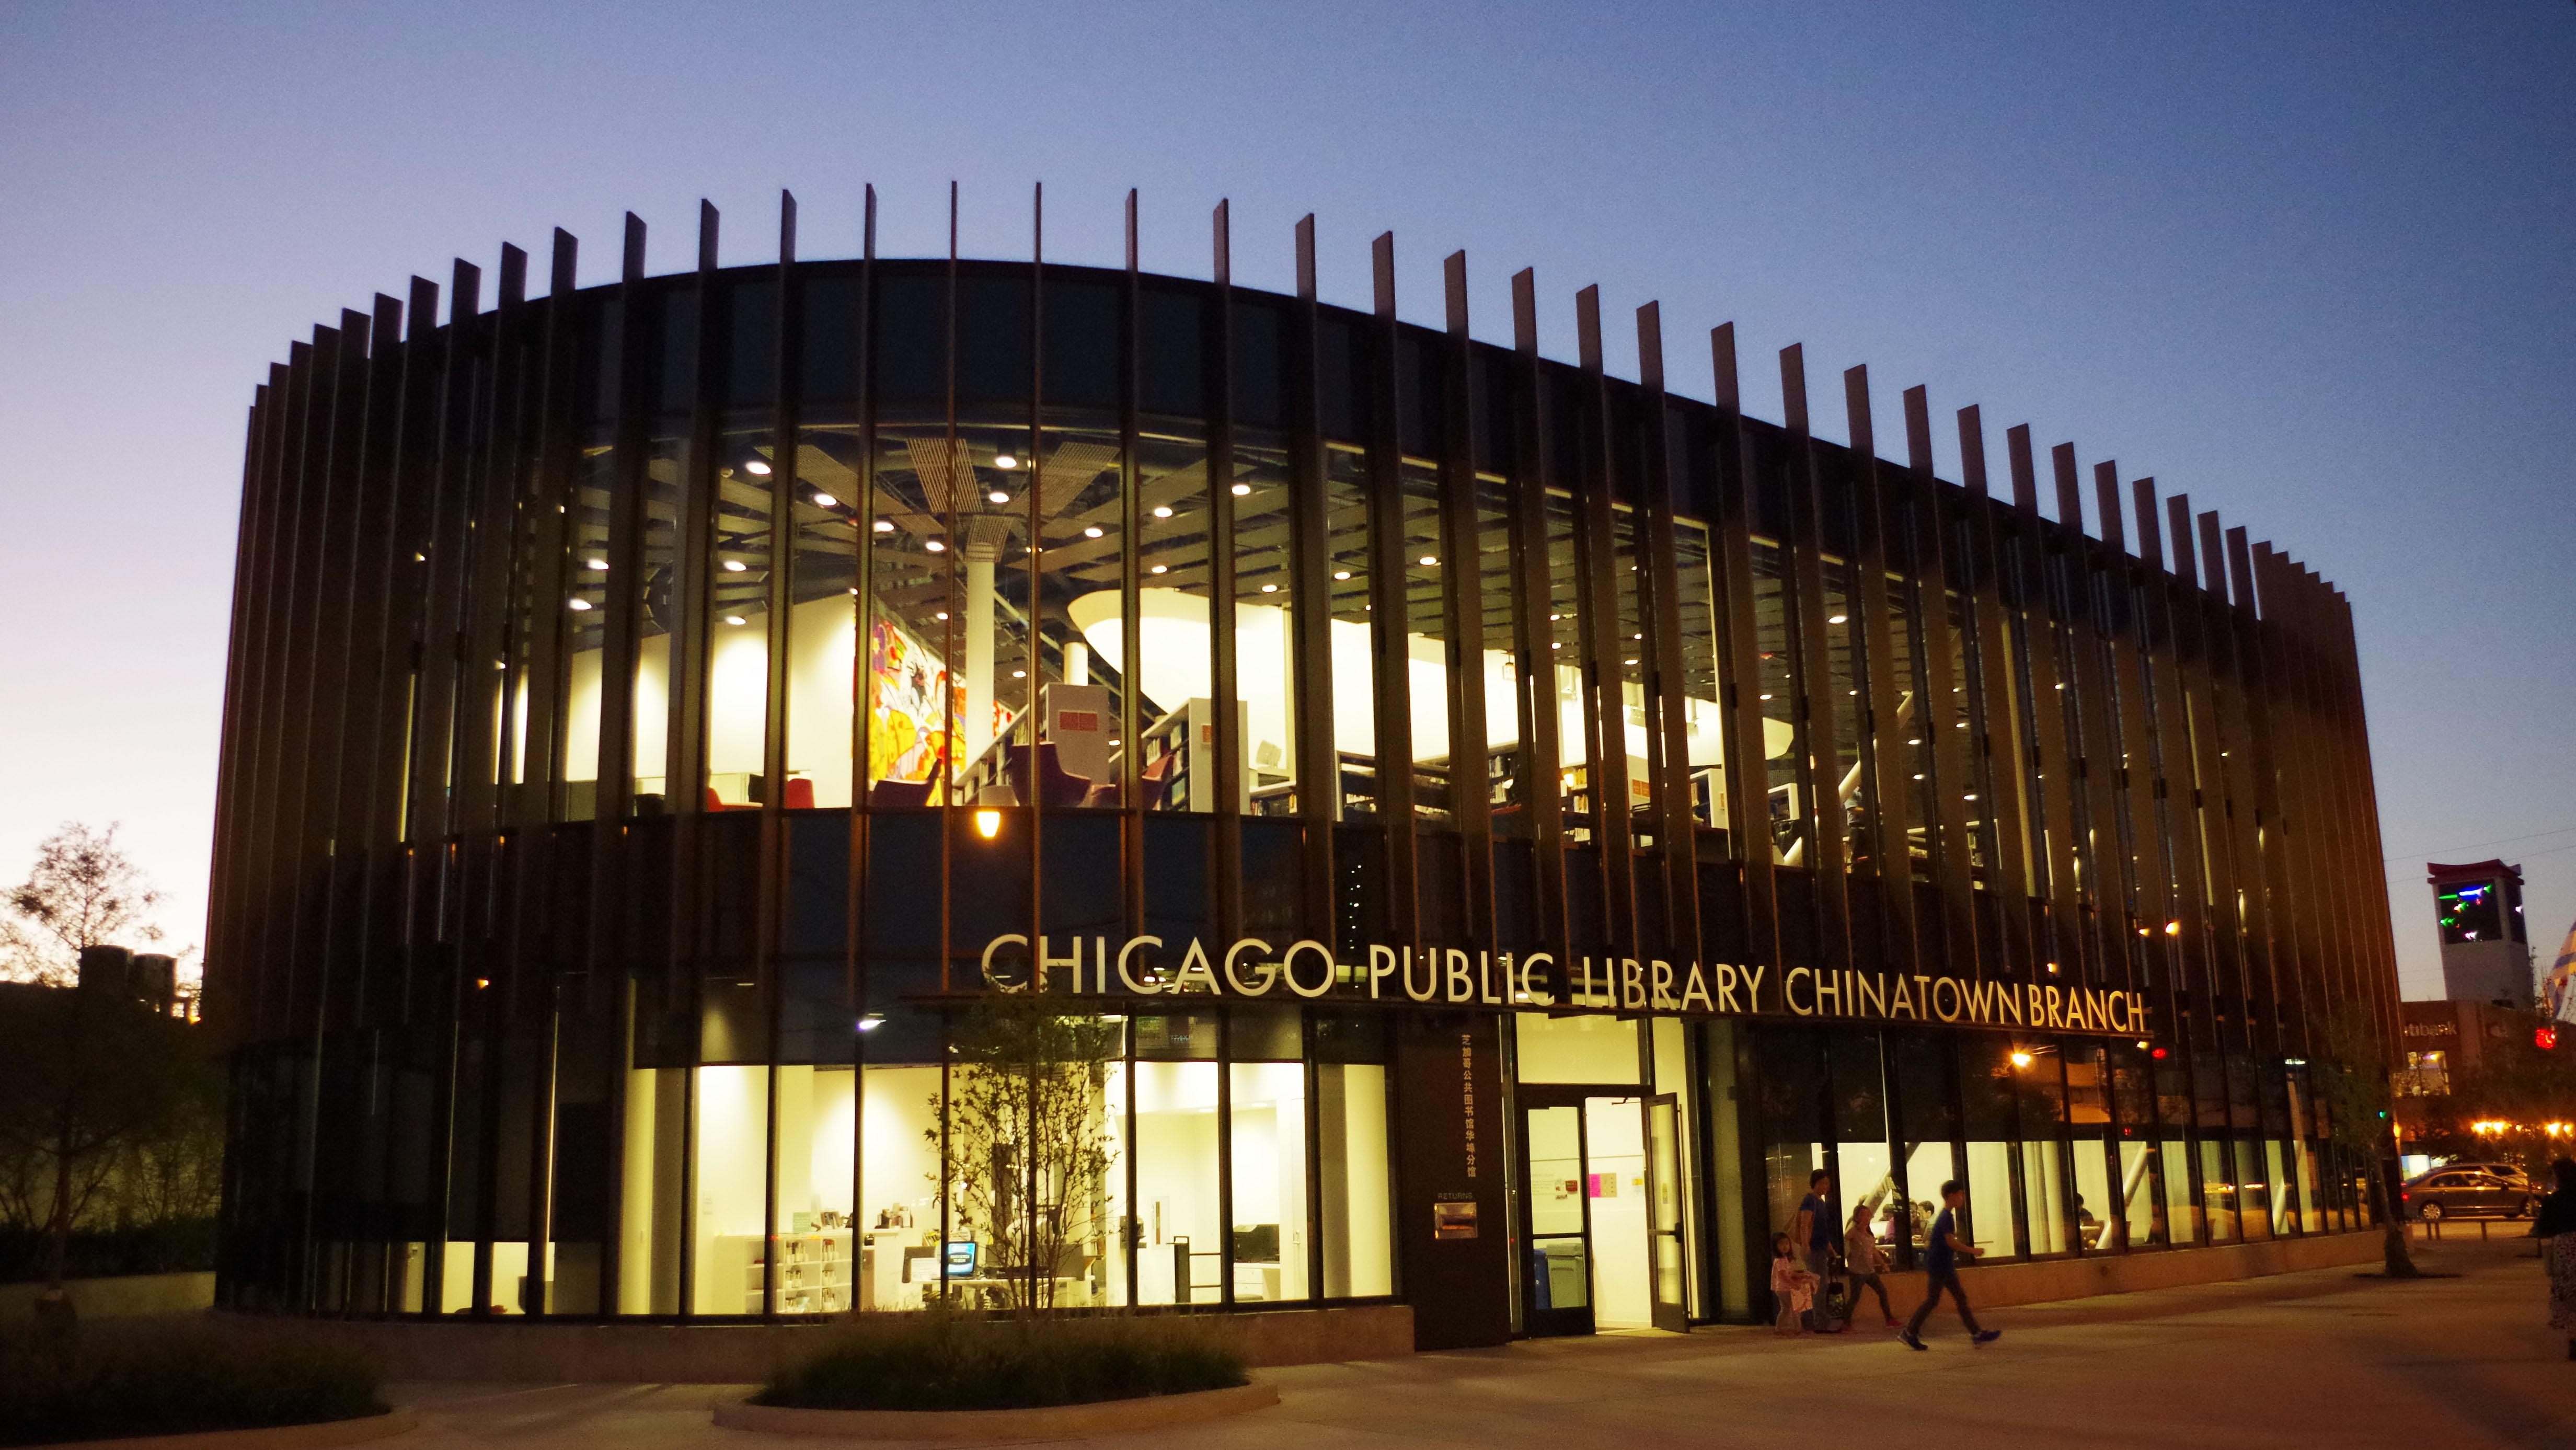 The Chicago Public Library's revamped Chinatown branch opened in 2015 a feng shui-influenced interior design and expansive views of the city. A design competition for three new CPL branches just wrapped up. (Smart Chicago Collaborative's photostream / Flickr)